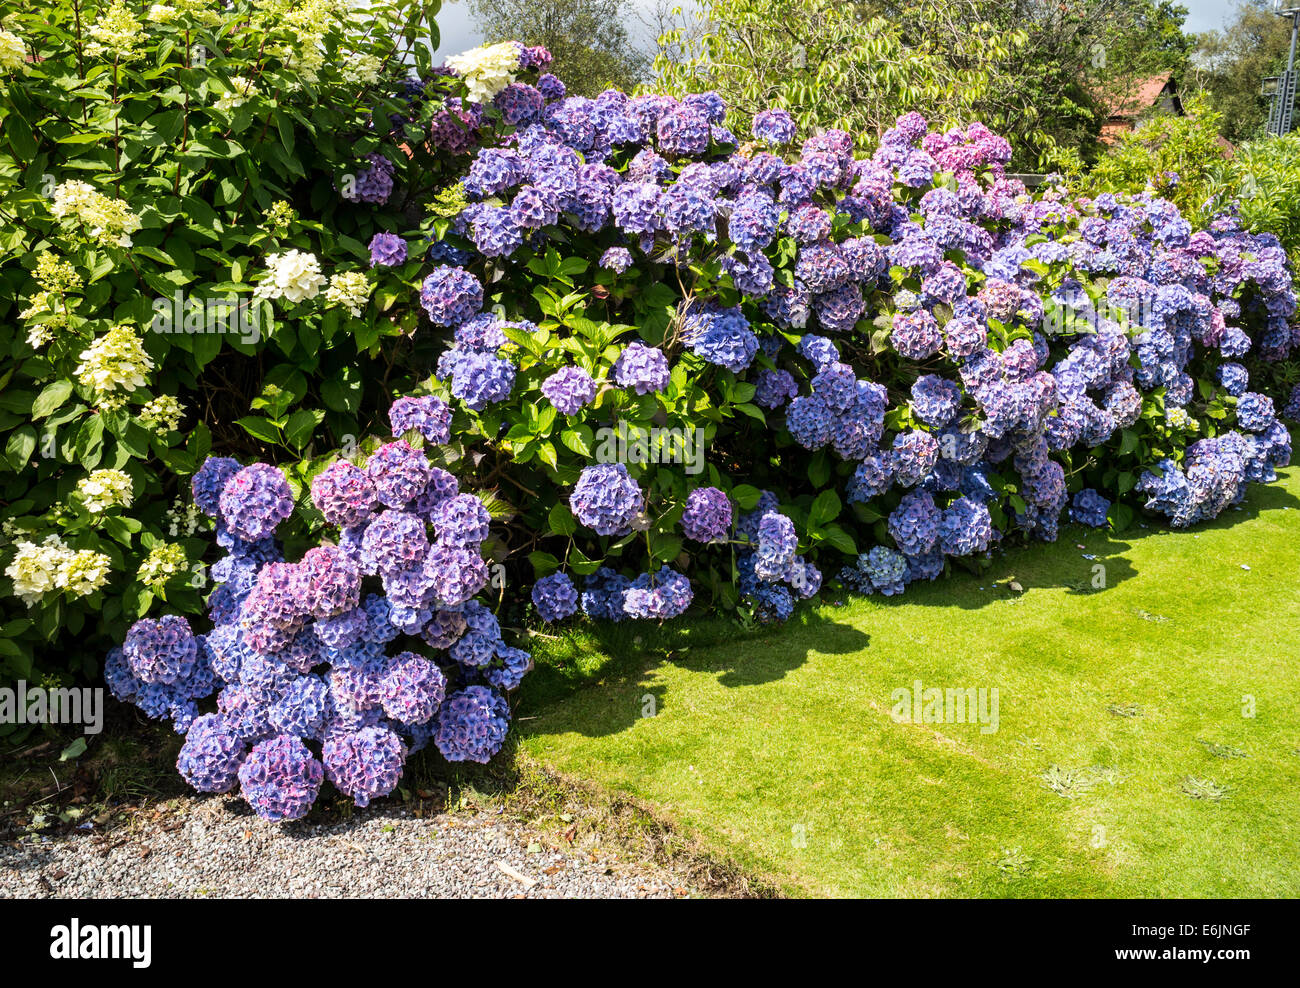 Hydrangea bush in bloom - Stock Image